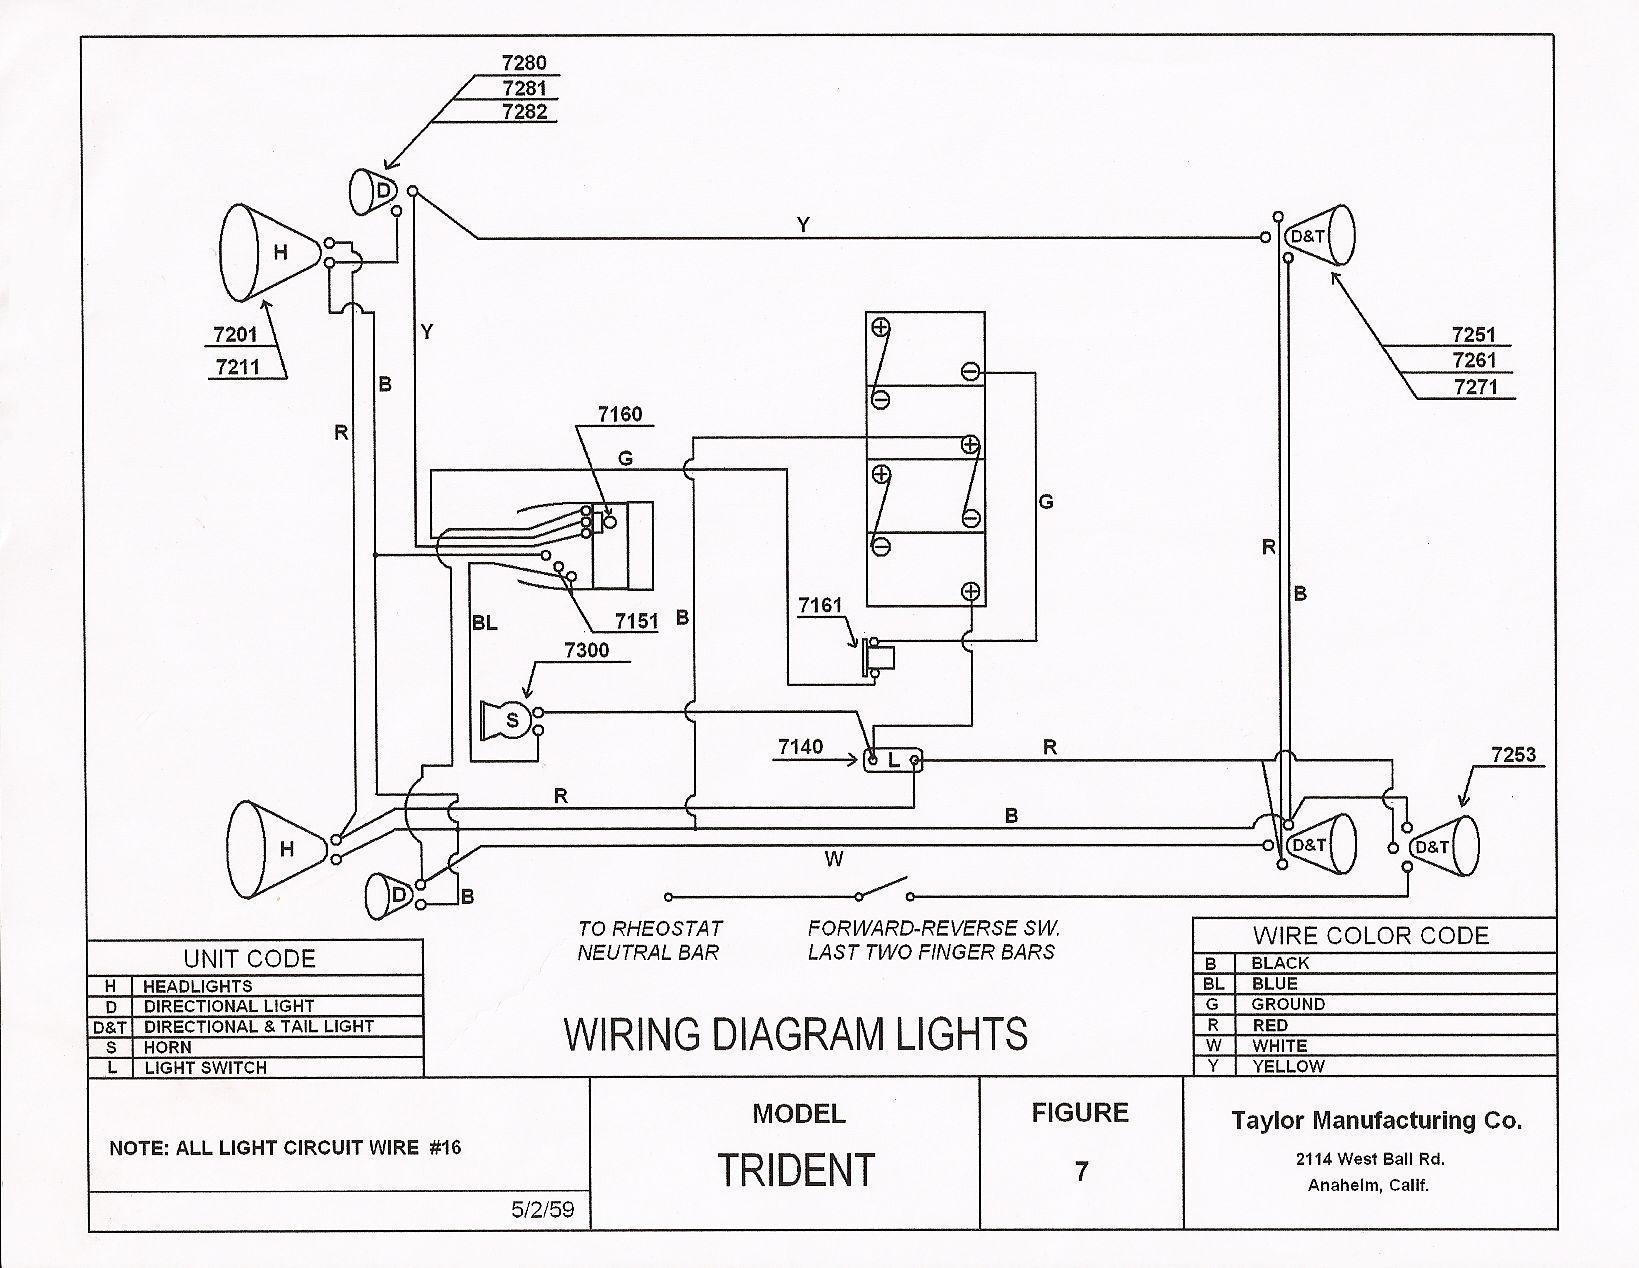 taylor dunn r380 wiring diagram 36 wiring library Taylor Parts Manual taylor dunn b2 wiring diagram 10 wiring diagrams \\u2022 taylor dunn ss5 36 schematic